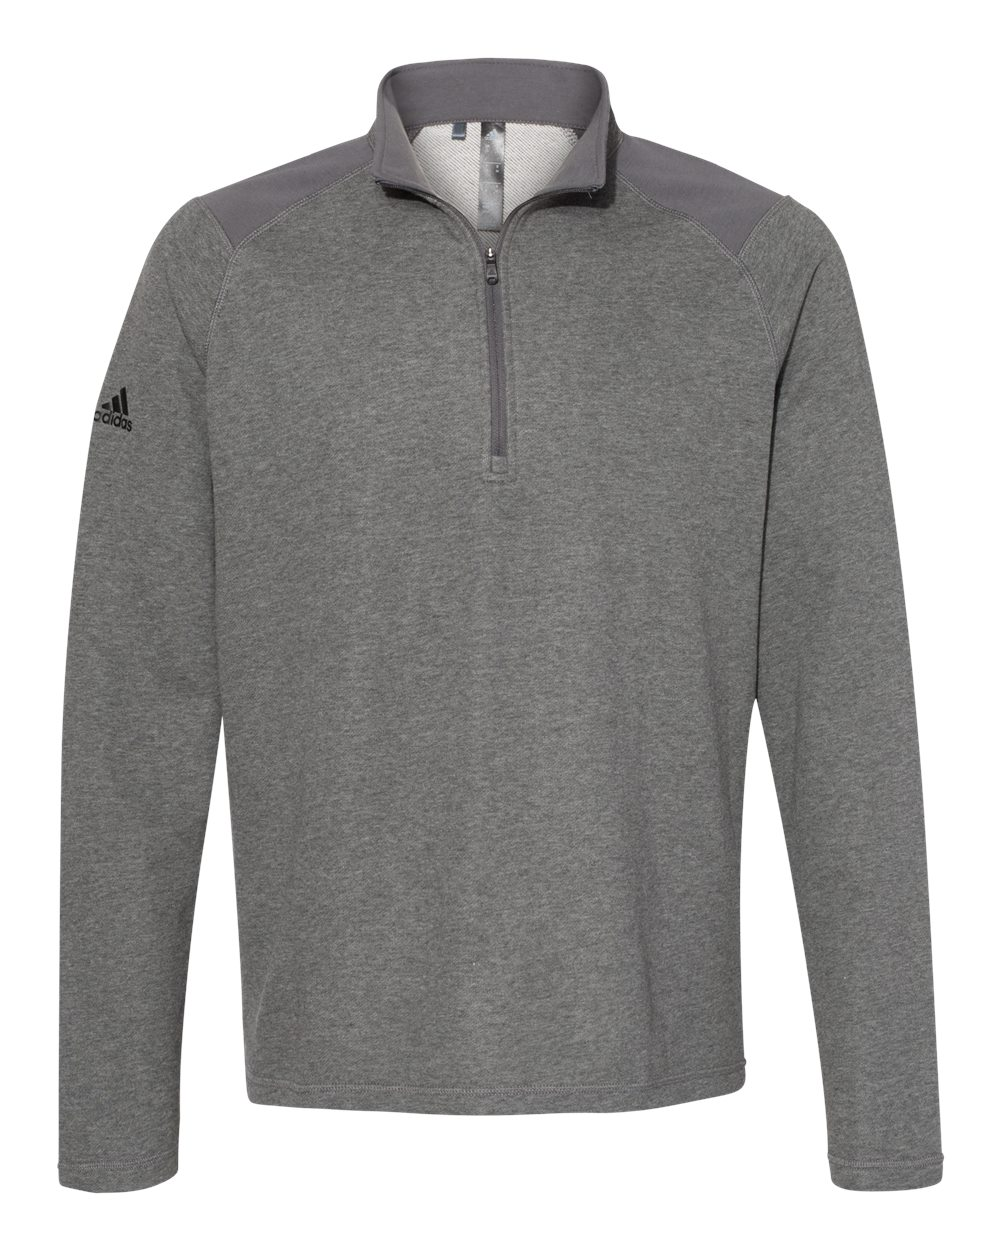 Adidas A463 - Heathered Quarter Zip Pullover with Colorblocked Shoulders